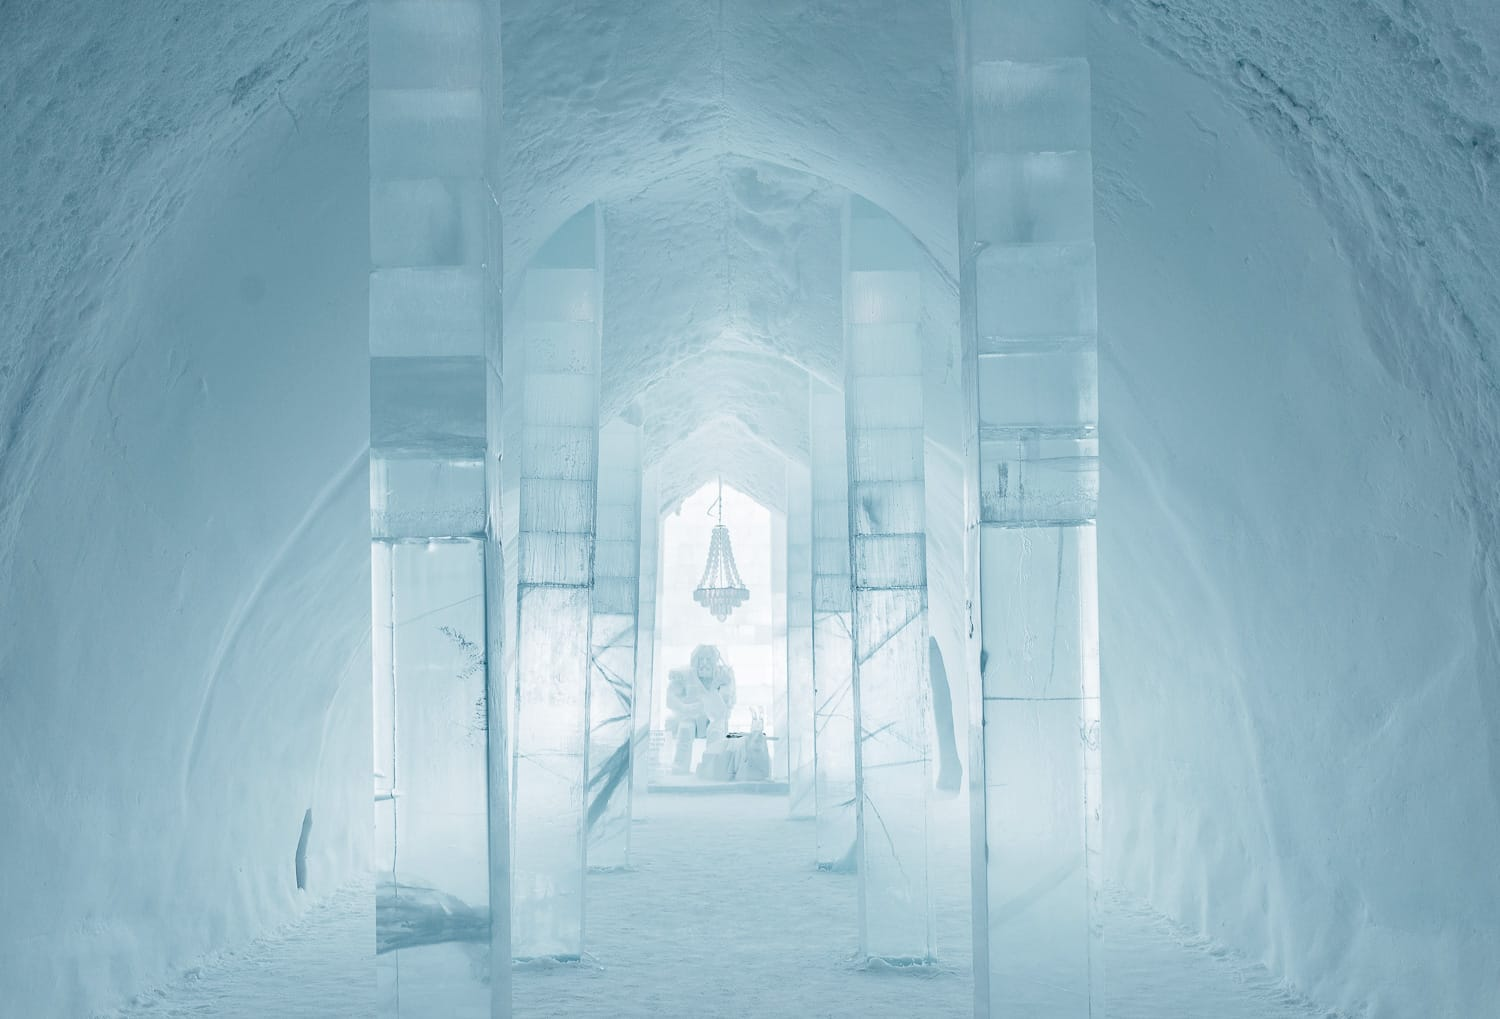 Thor sitting in his hall at the Ice Hotel in Jukkasjärvi